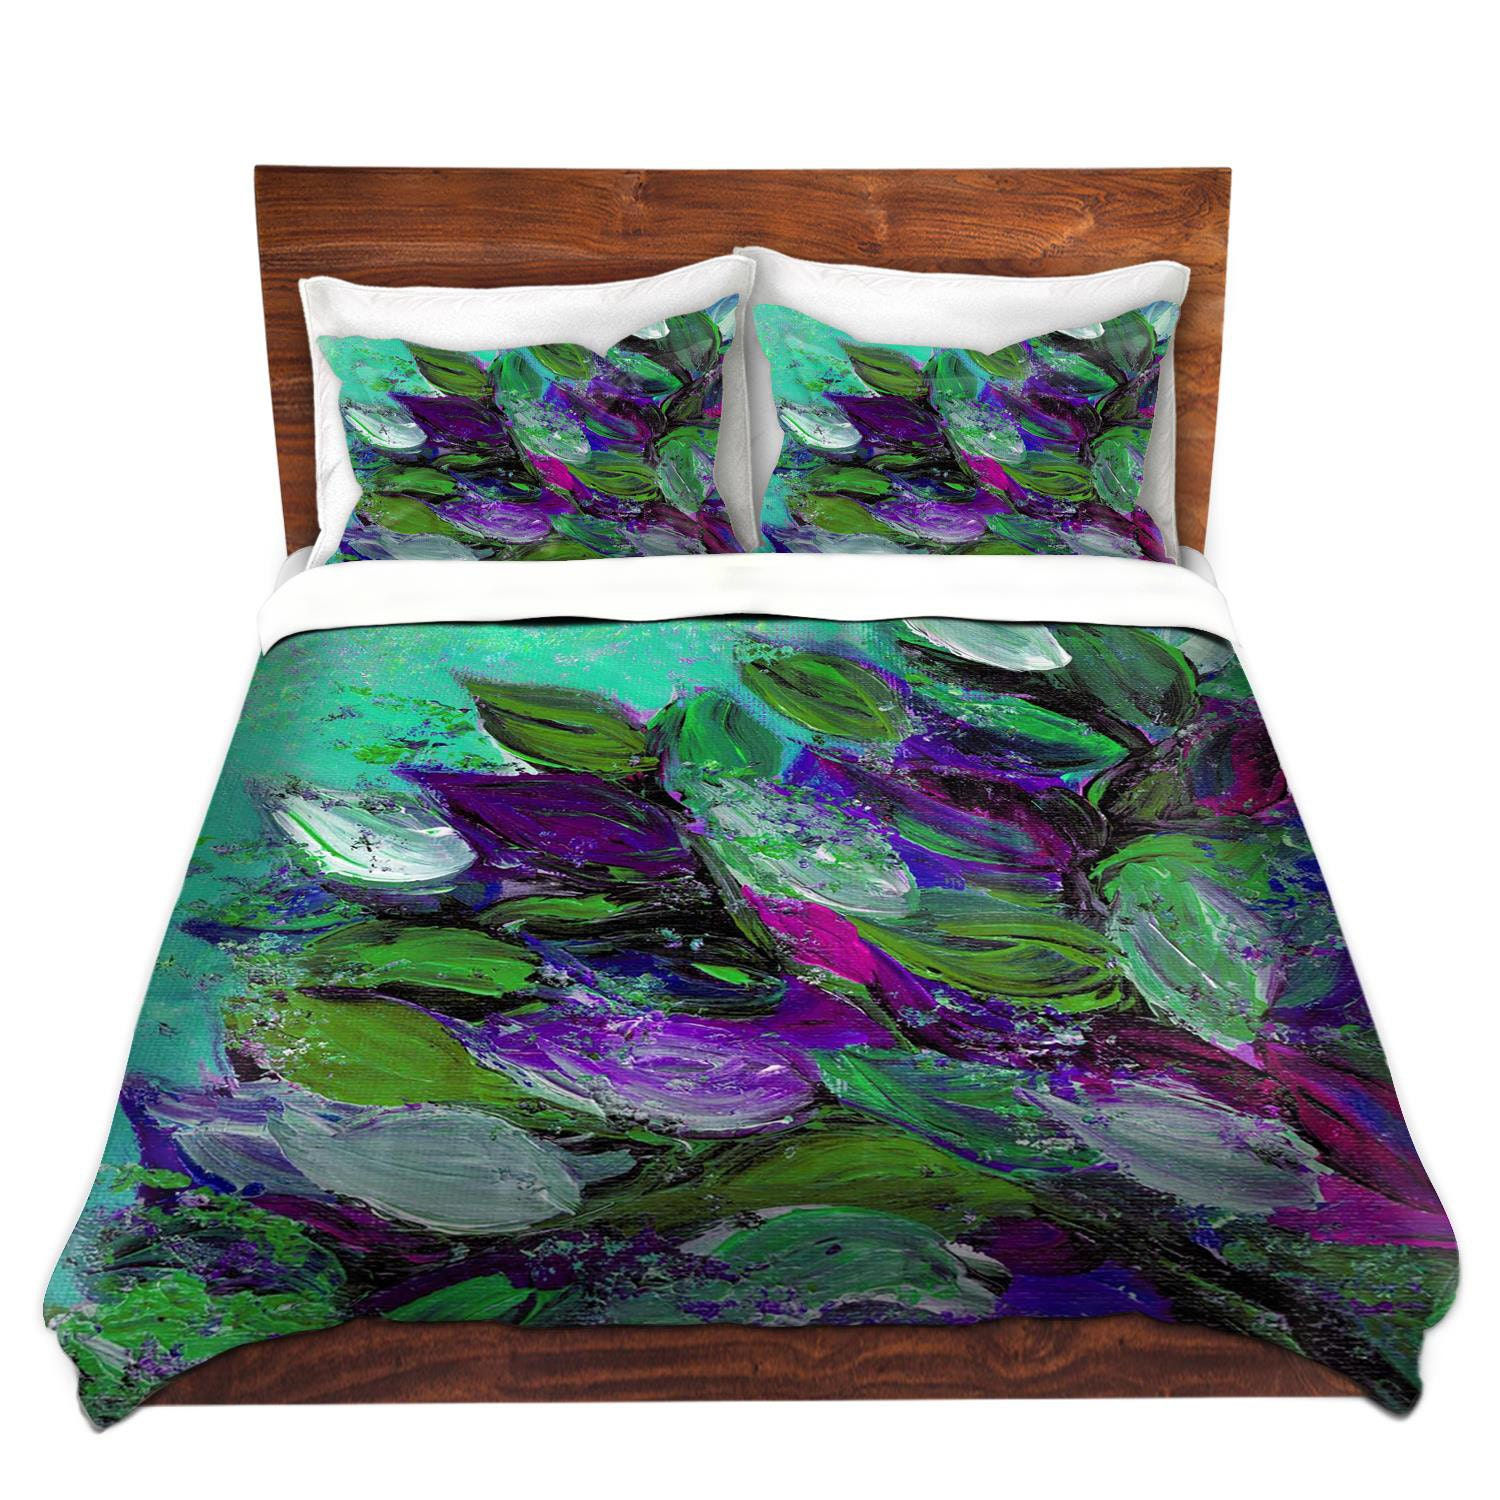 duvet b sophia bath green cover depot ca bedding n set sets the weavers artistic home teal decor king compressed